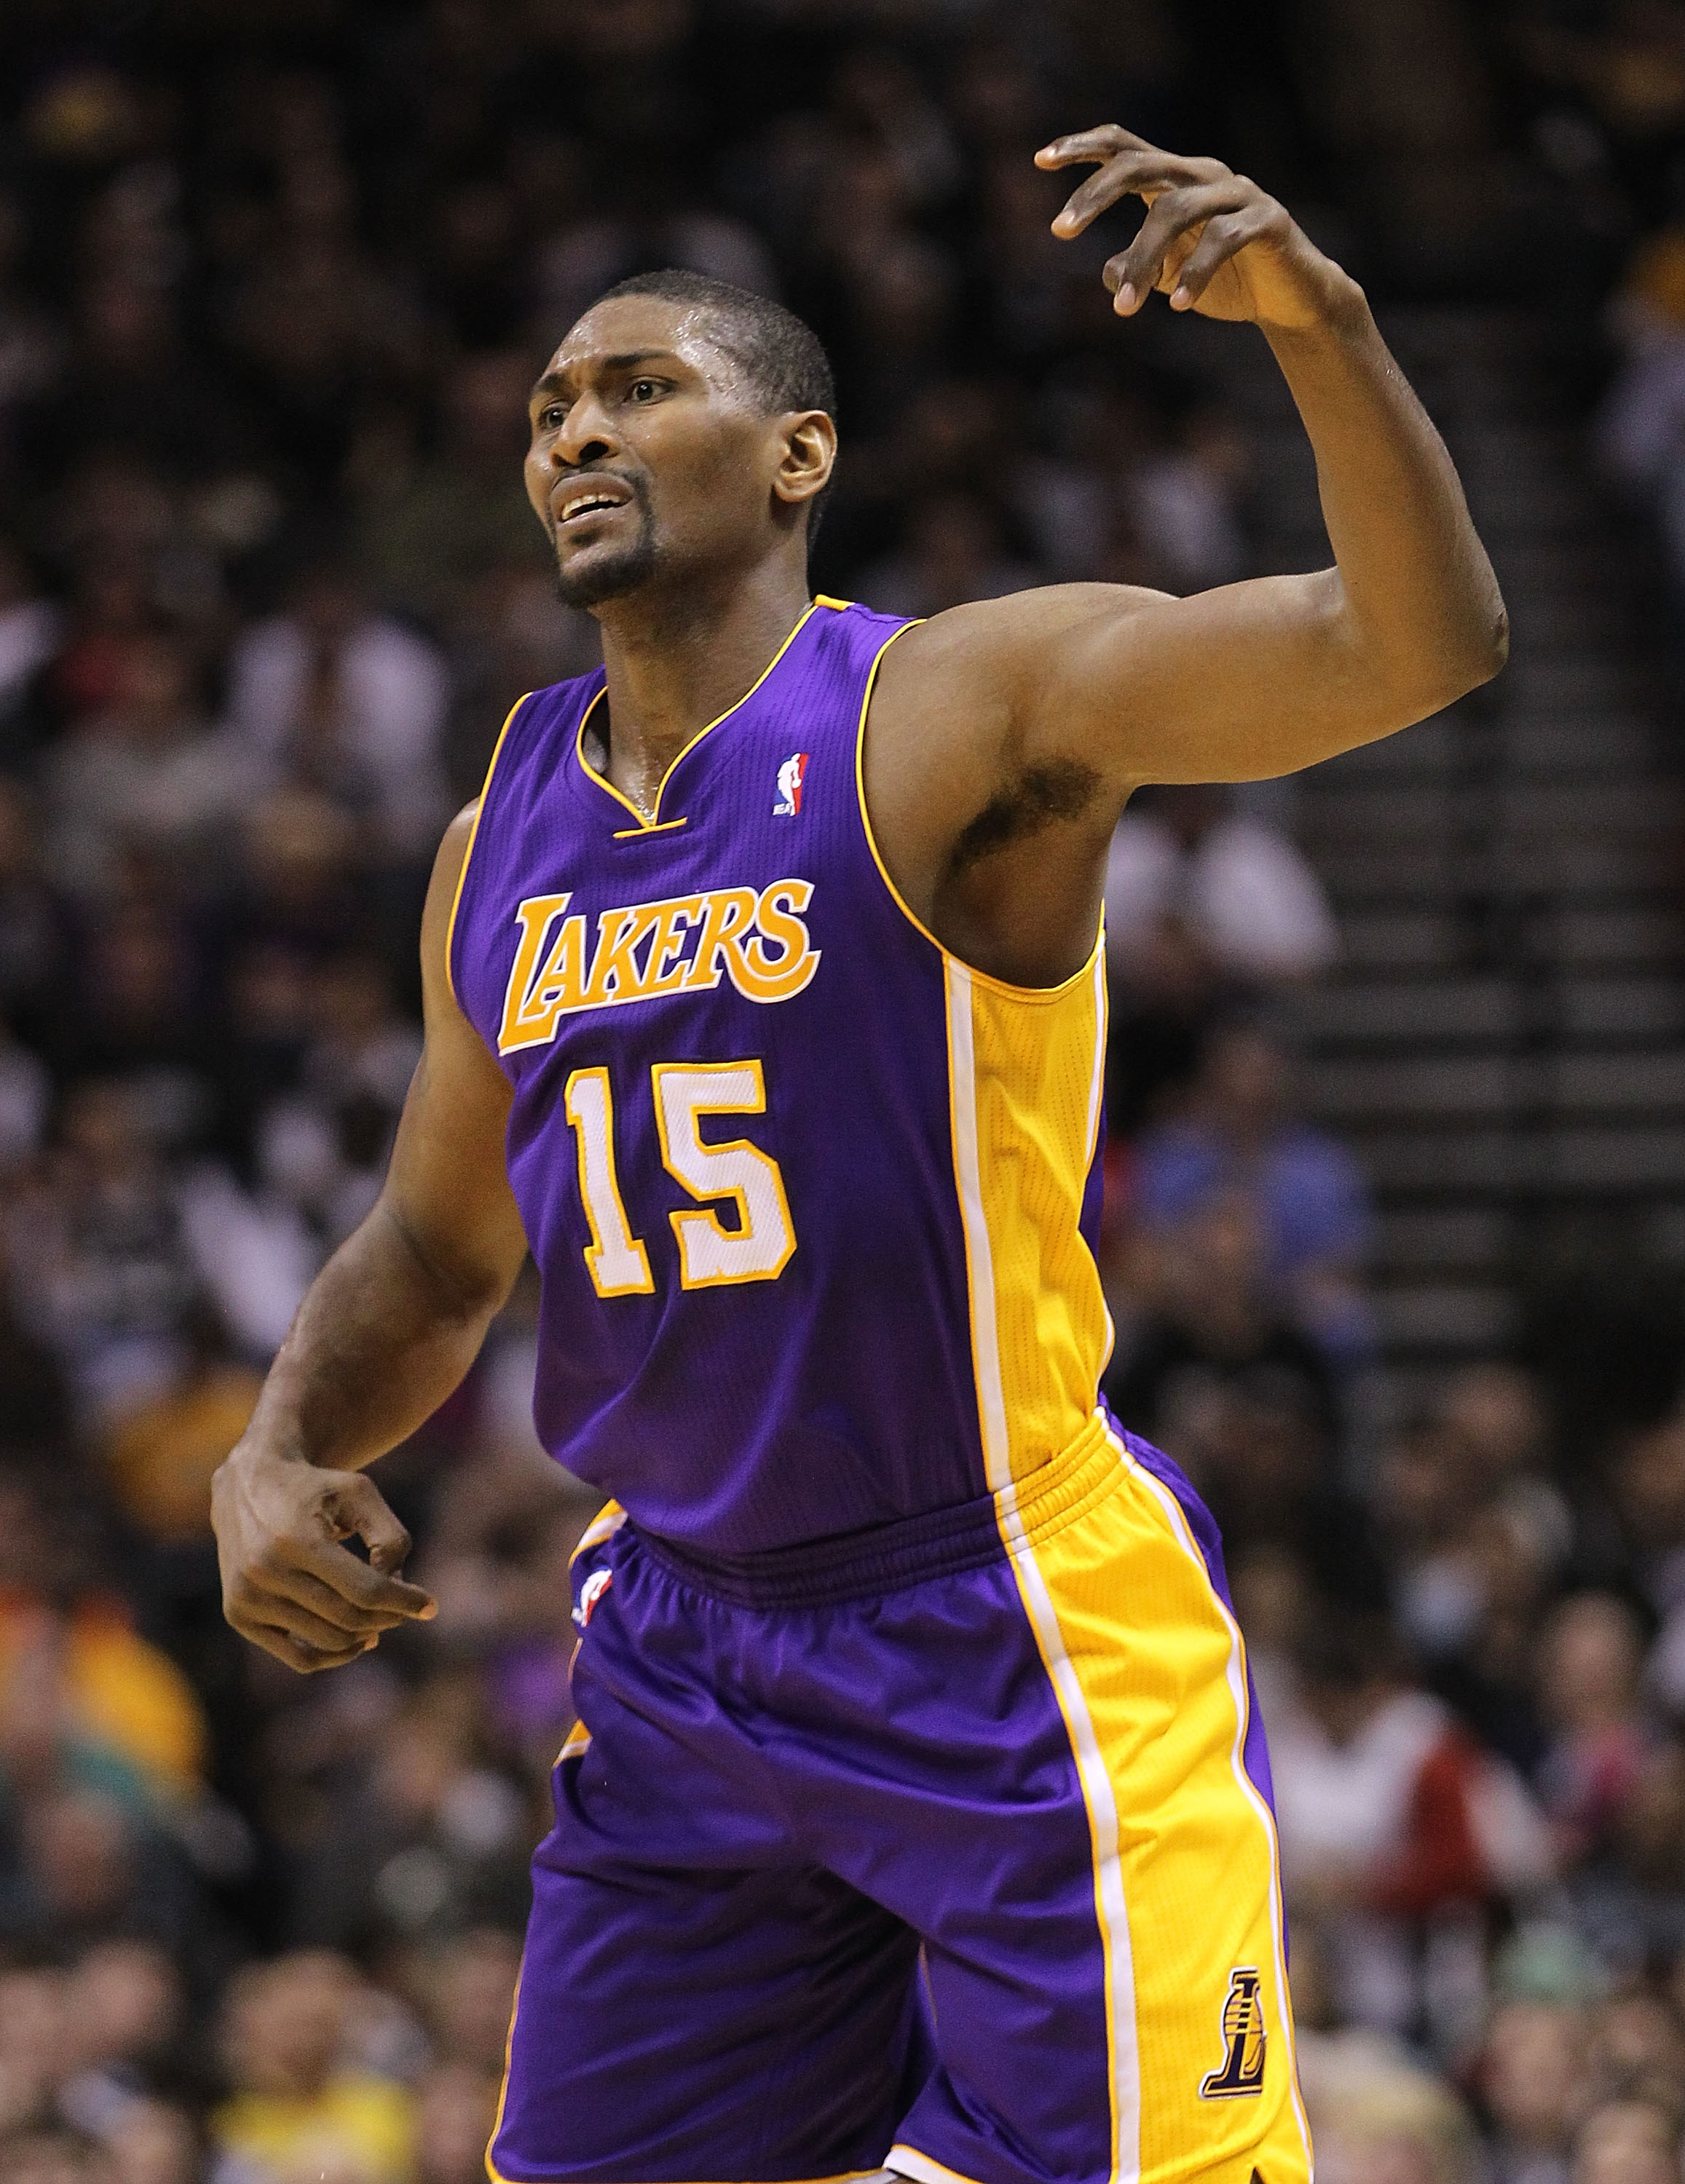 SAN ANTONIO, TX - DECEMBER 28:  Forward Ron Artest #15 of the Los Angeles Lakers at AT&T Center on December 28, 2010 in San Antonio, Texas.  NOTE TO USER: User expressly acknowledges and agrees that, by downloading and/or using this photograph, user is co